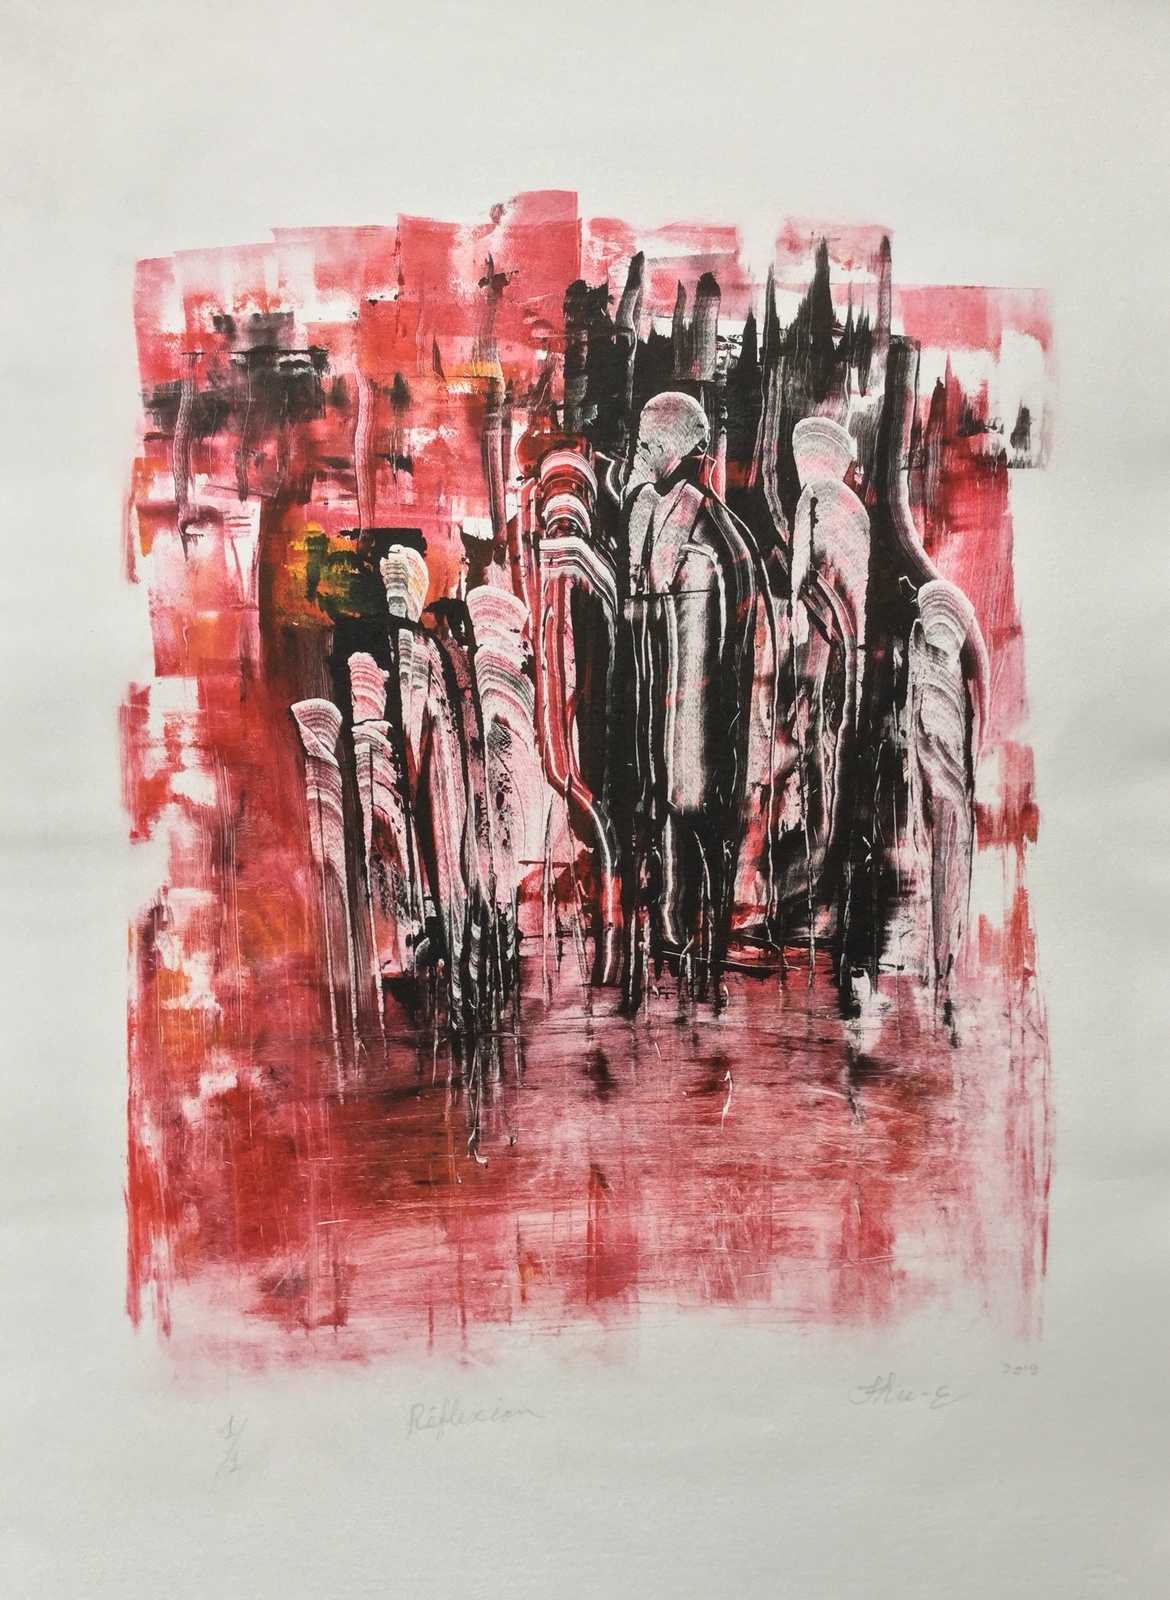 Réflexion 56×78  2019 – Technique : monotype – Collection privée